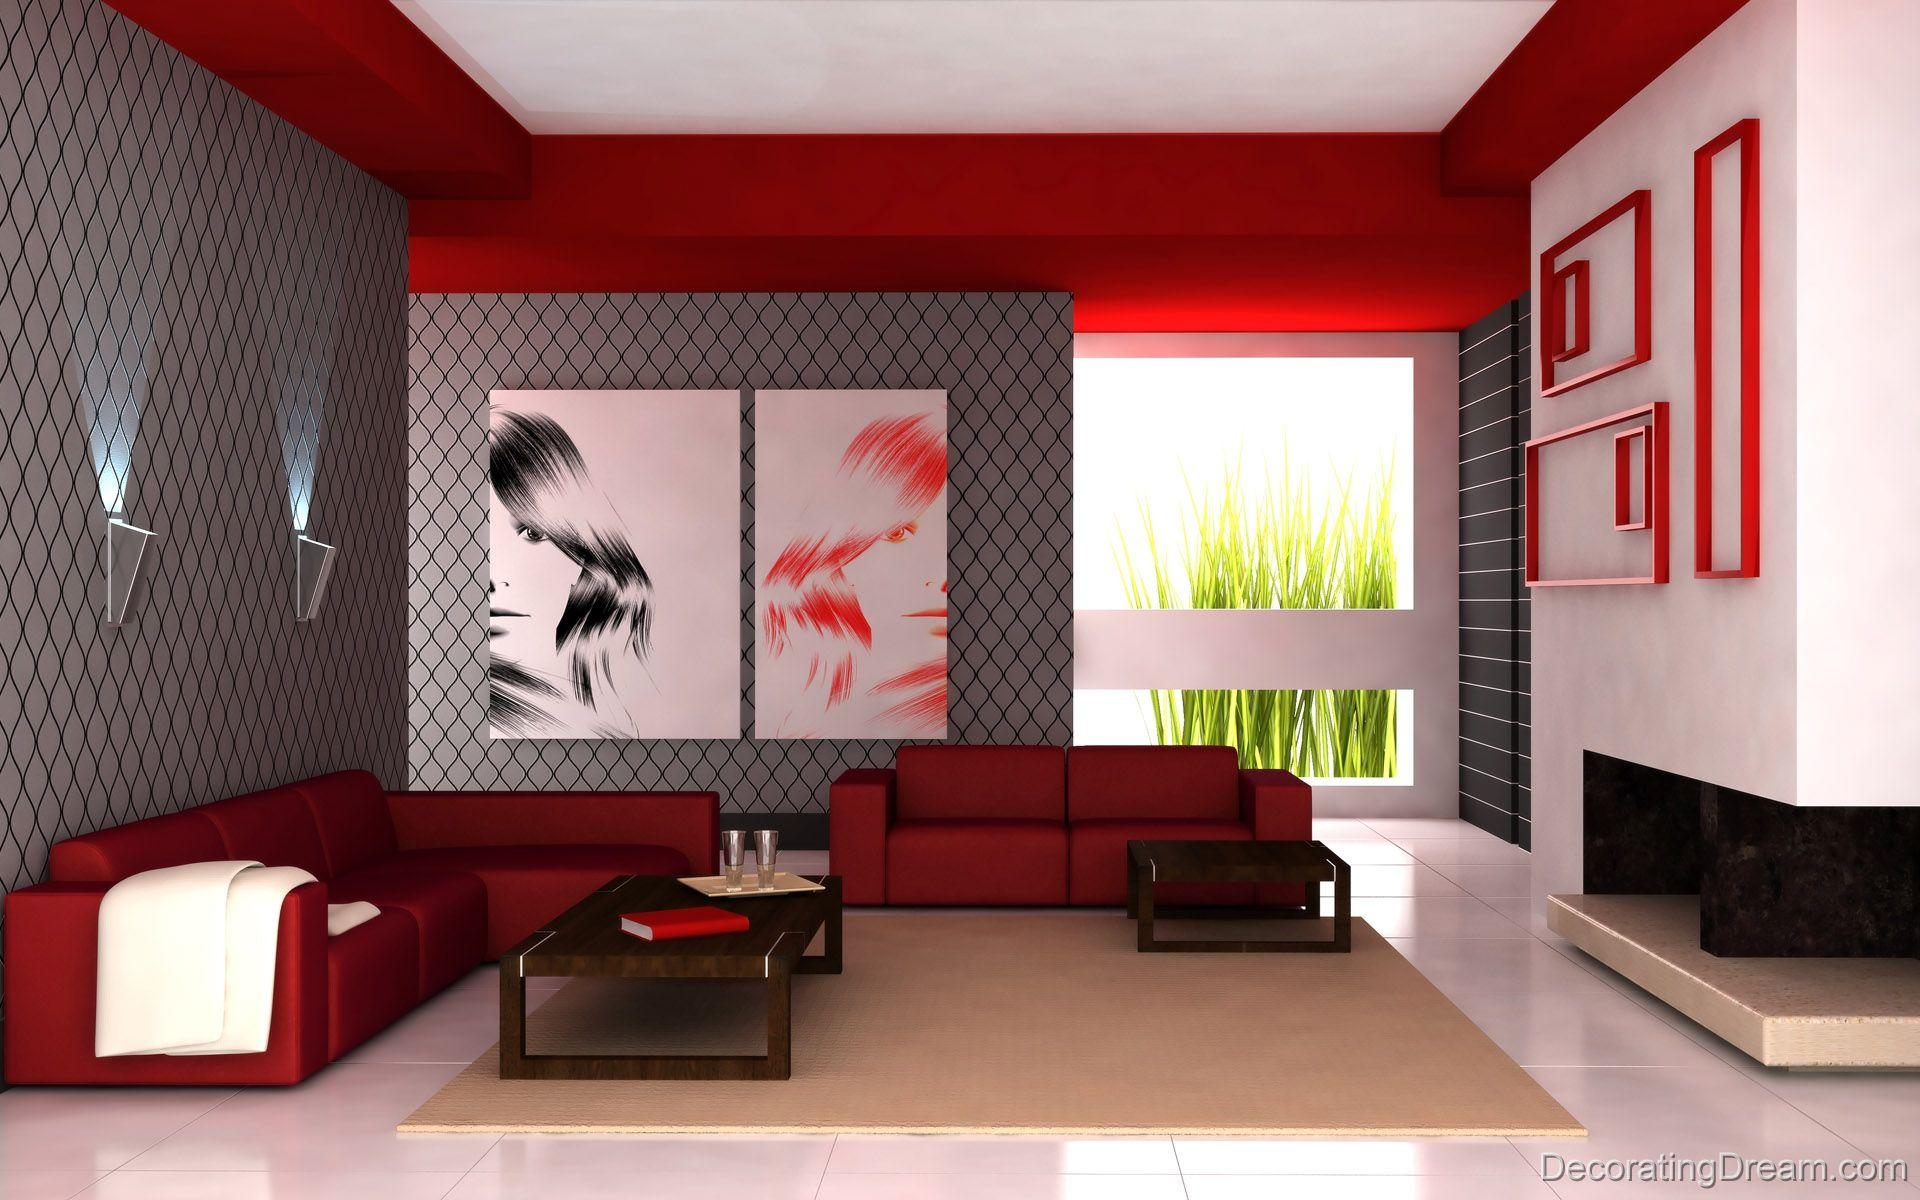 Fantastic Living Room Wall Decor With Great Pictures Attach Grey For Wall Pictures For Living Room (Image 13 of 20)